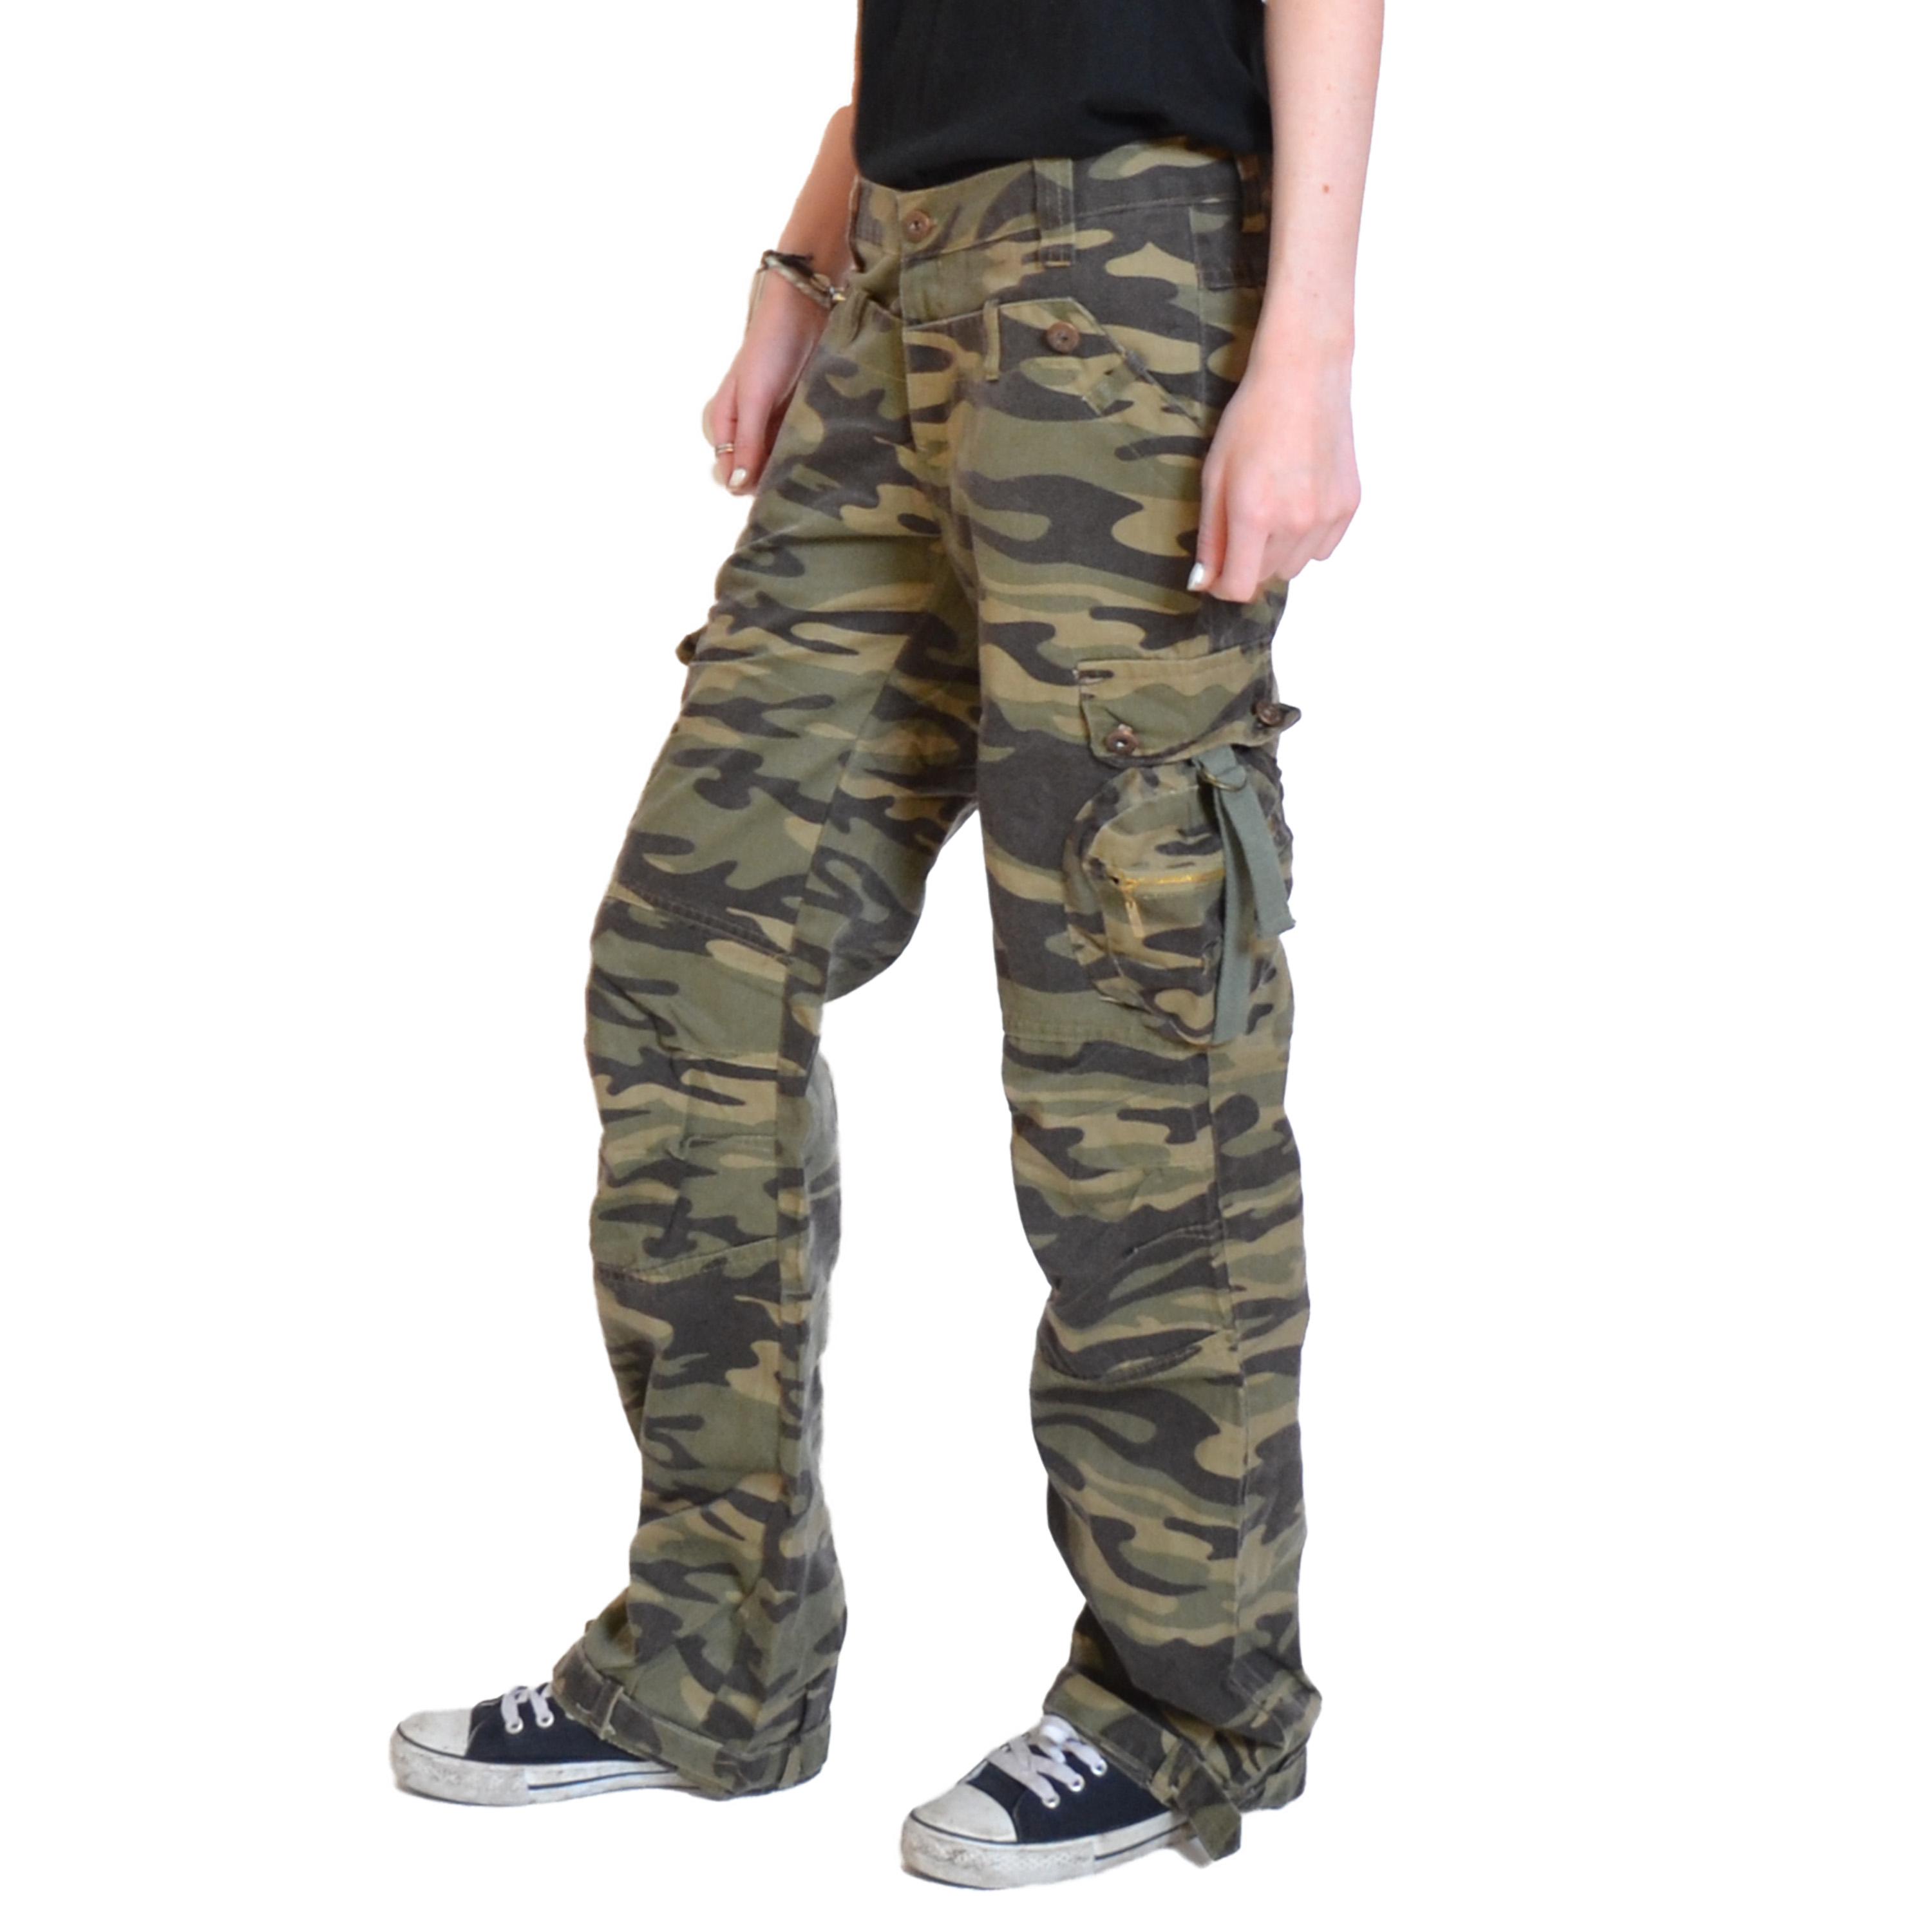 Original Womens Military Olive Green Cargo Pants The Army Olive Green Cargo